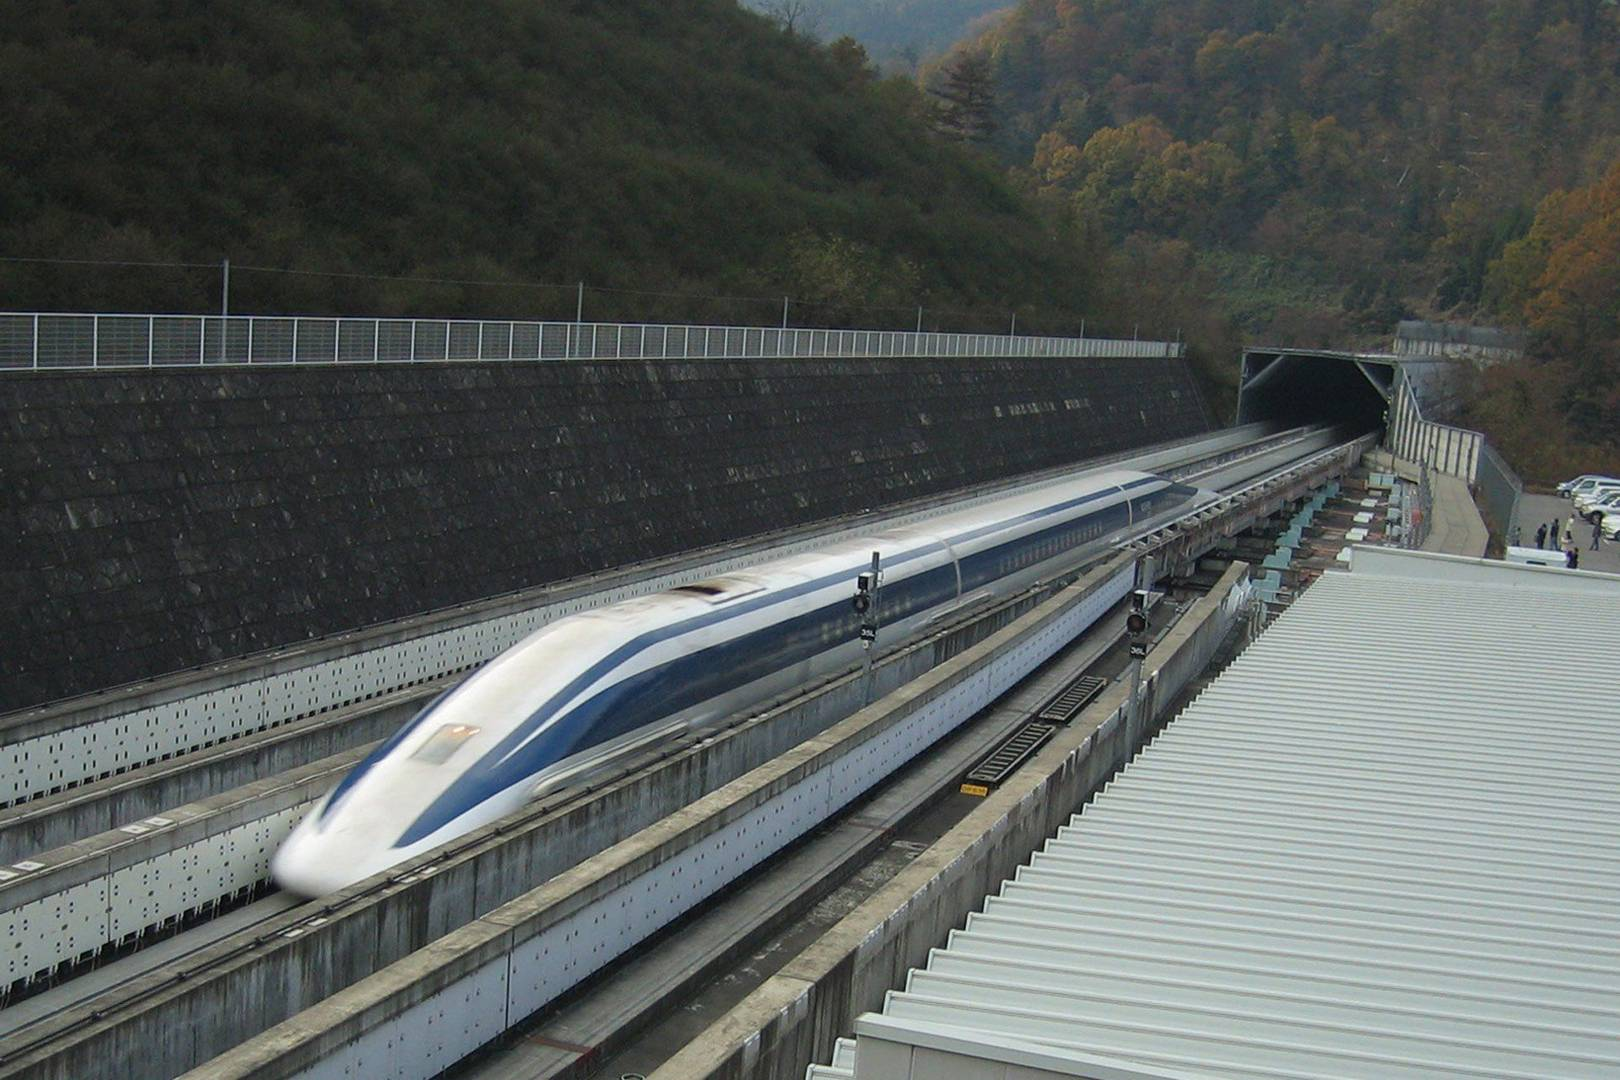 Japan's 500km/h maglev train undergoes first successful test